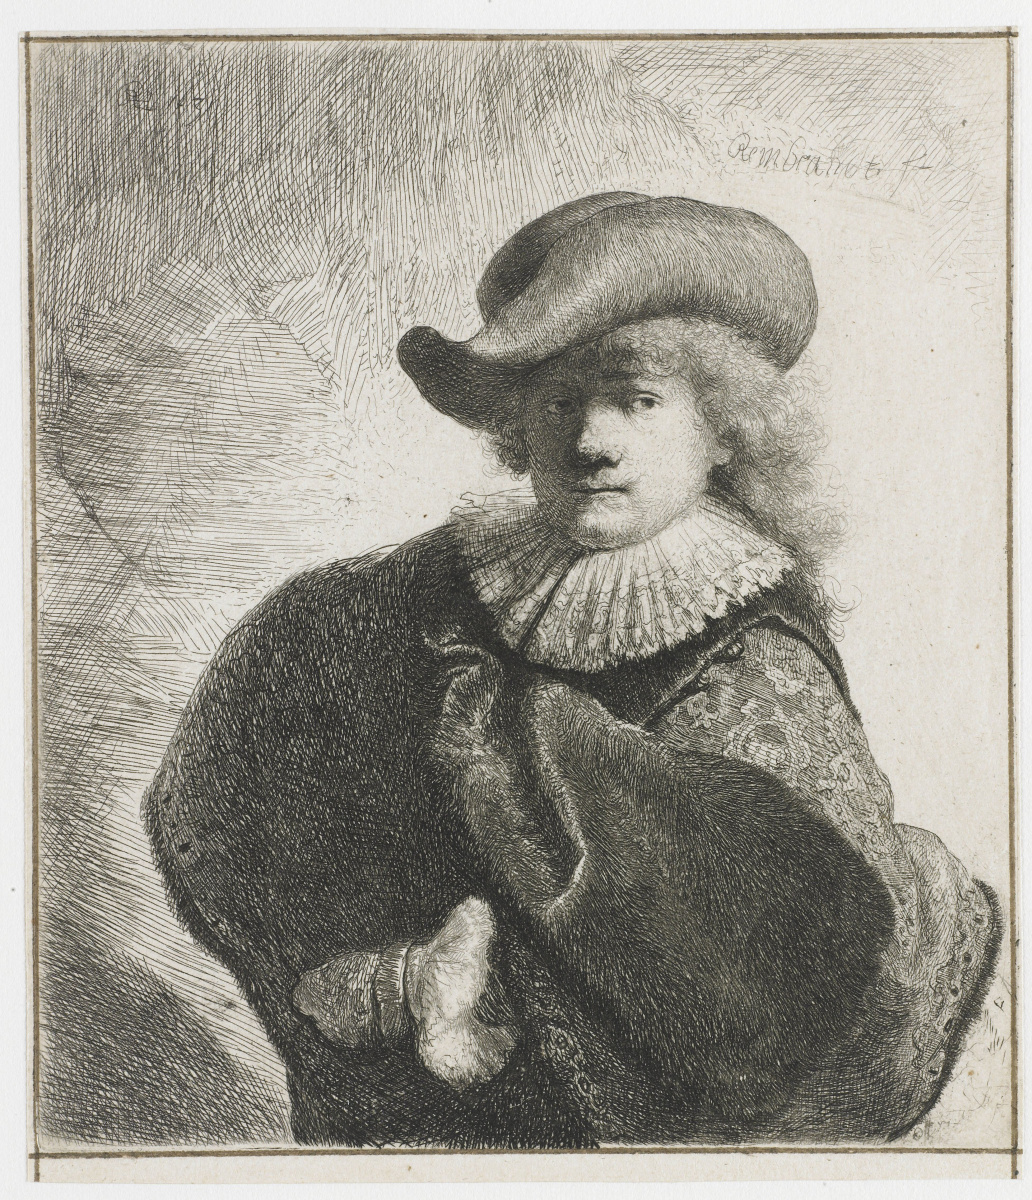 Rembrandt Harmenszoon van Rijn. Self-portrait in a hat with a curved brim and embroidered cloak